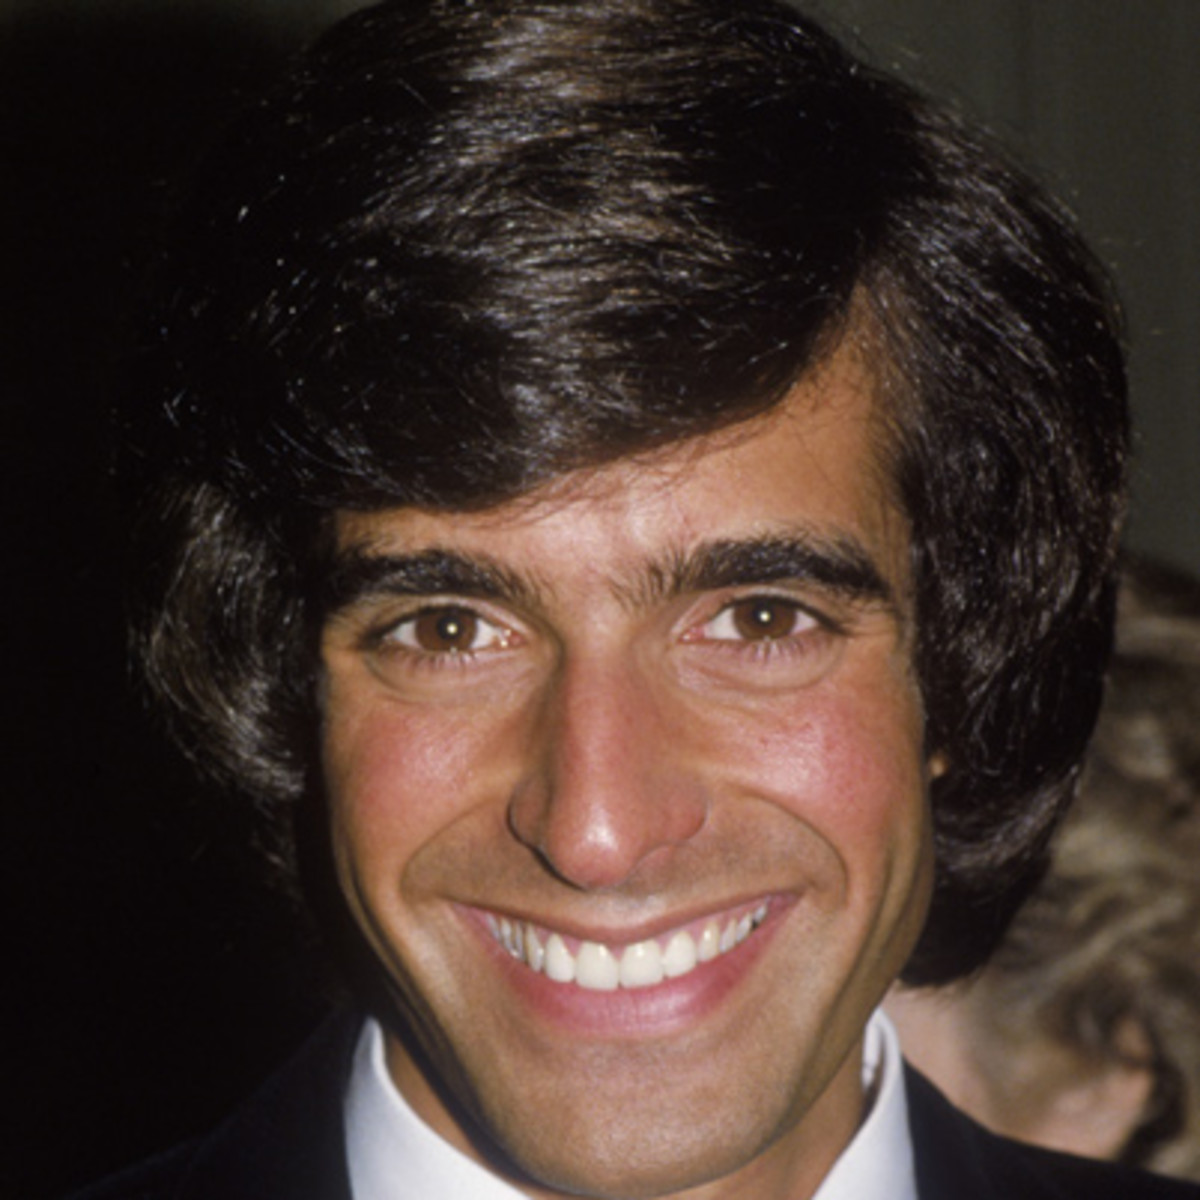 david copperfield magician philanthropist television david copperfield magician philanthropist television personality com